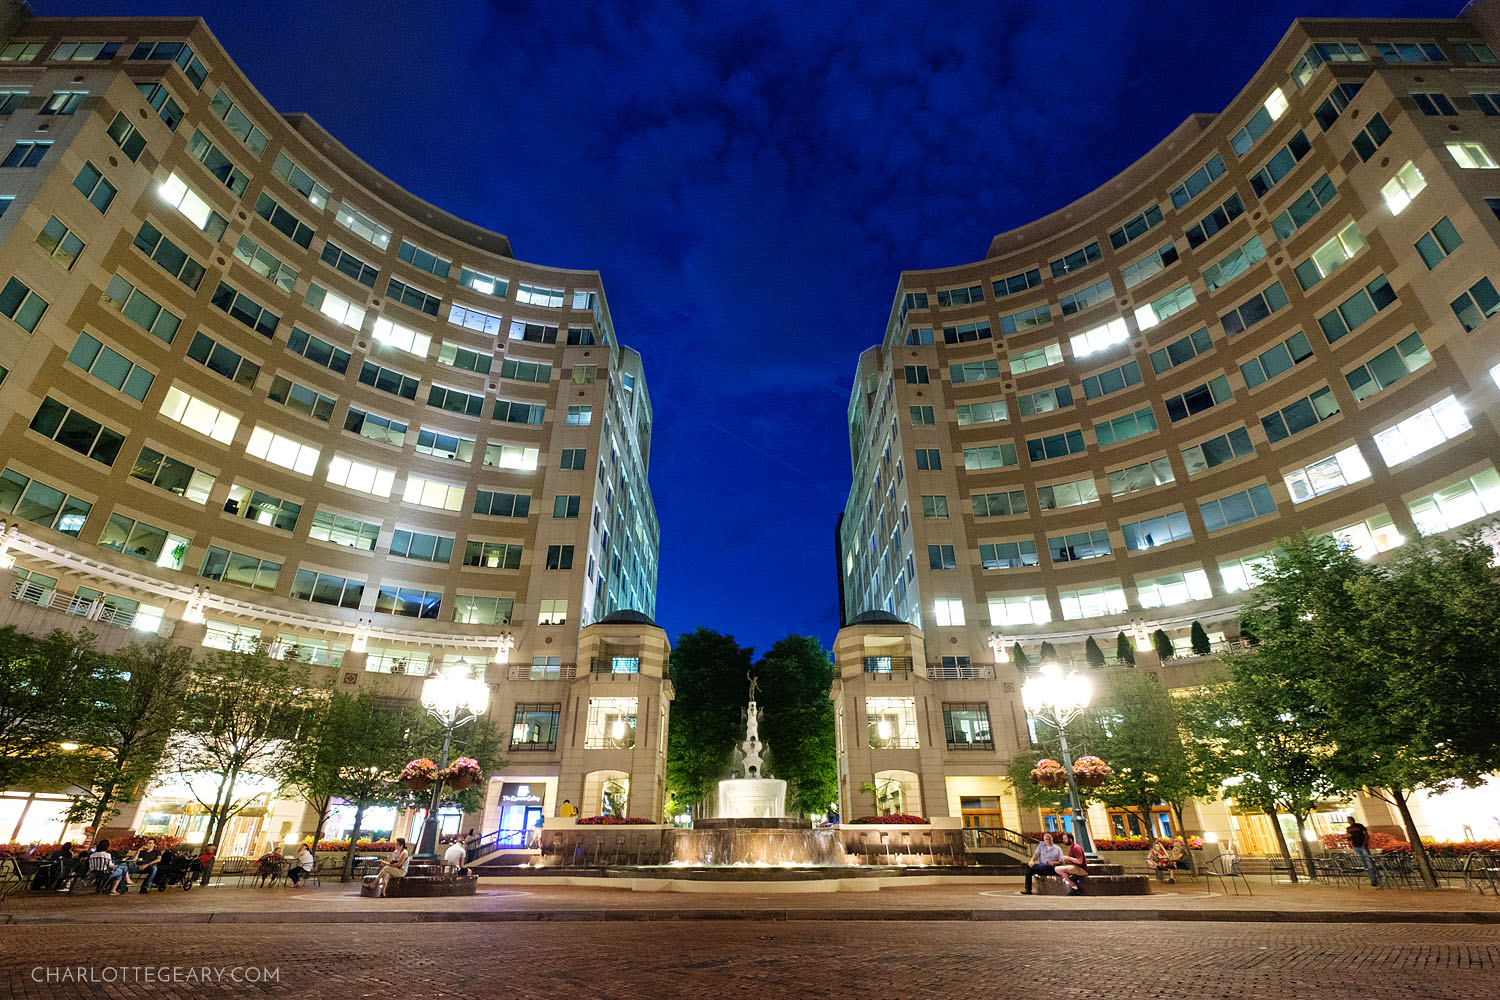 Market Street and Mercury Fountain at Reston Town Center